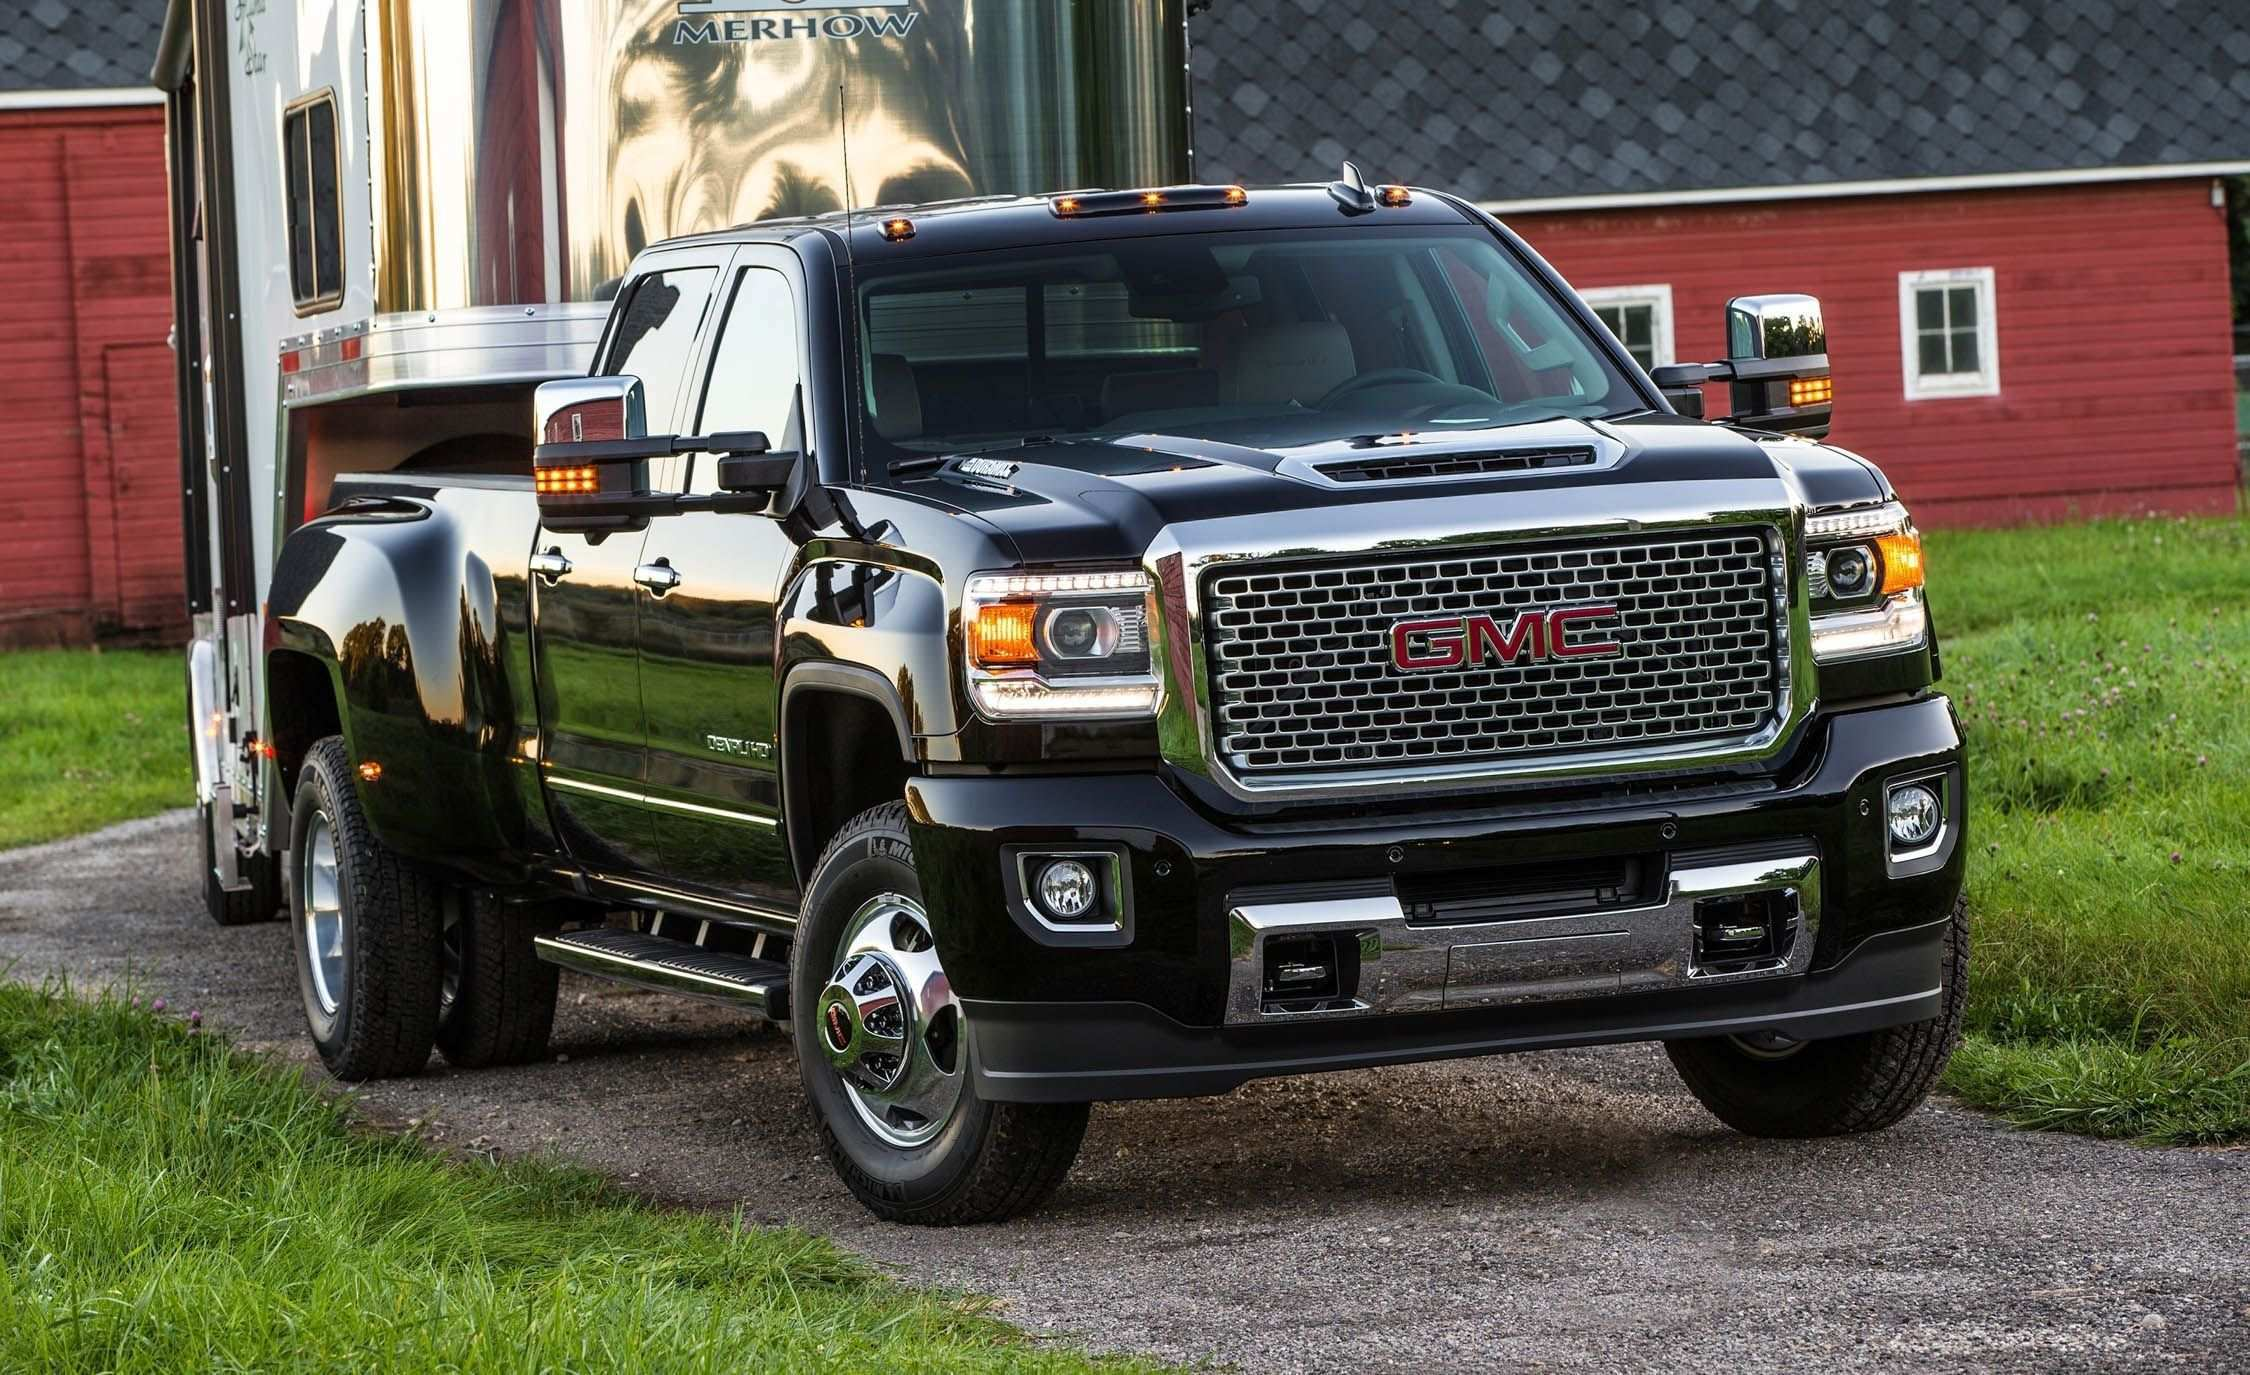 92 Gallery of Best Gmc 2019 Sierra 2500 Picture Release Date And Review Research New with Best Gmc 2019 Sierra 2500 Picture Release Date And Review